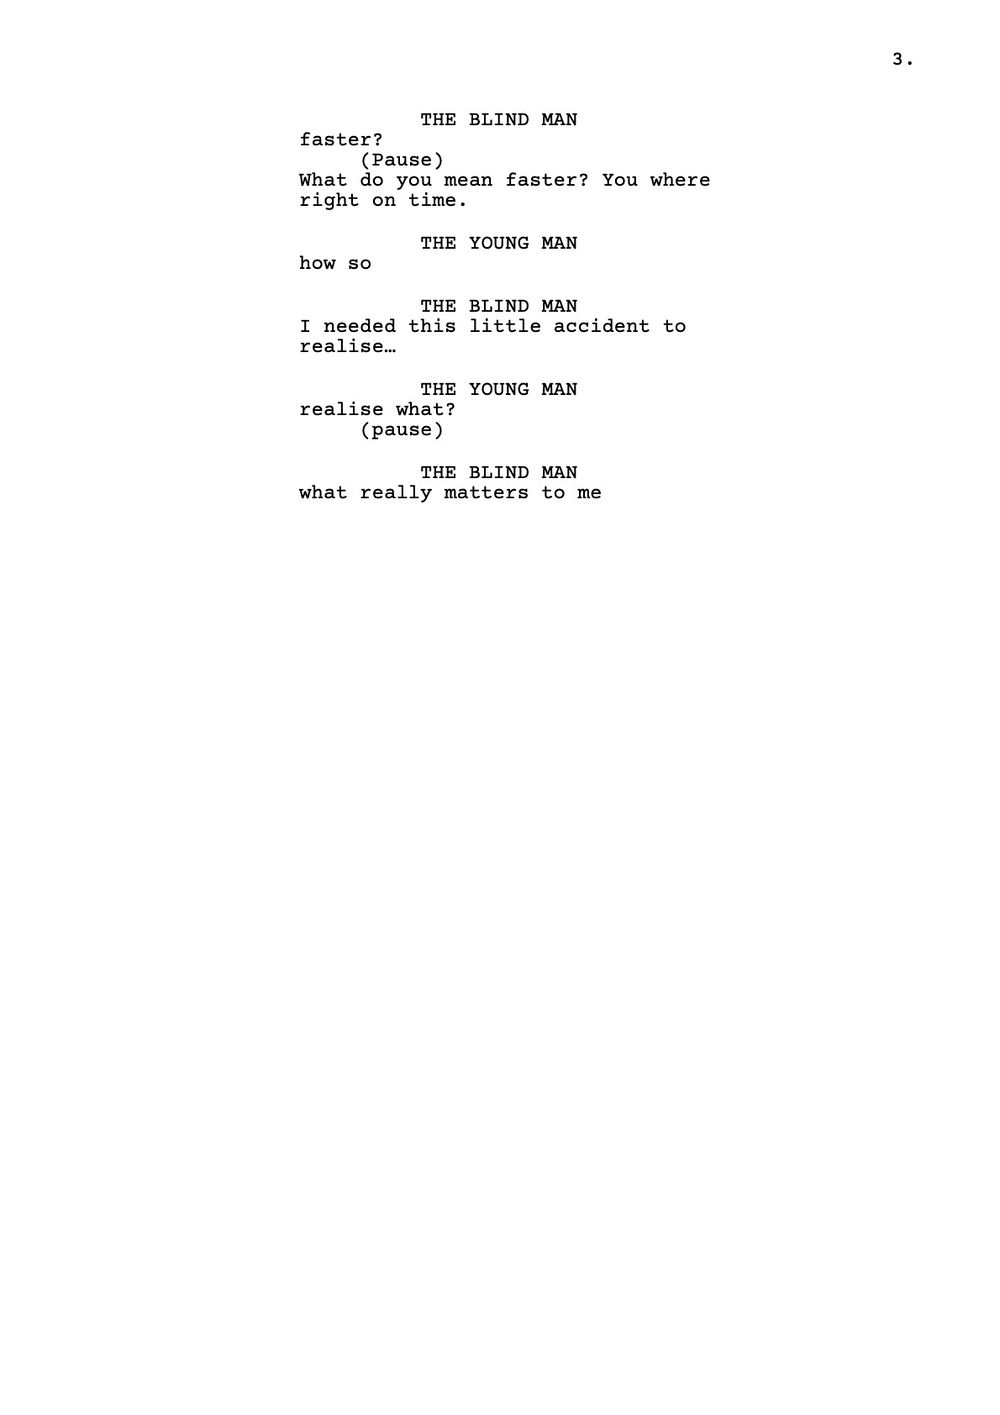 SCREENPLAY DRAFT - image 4 - student project